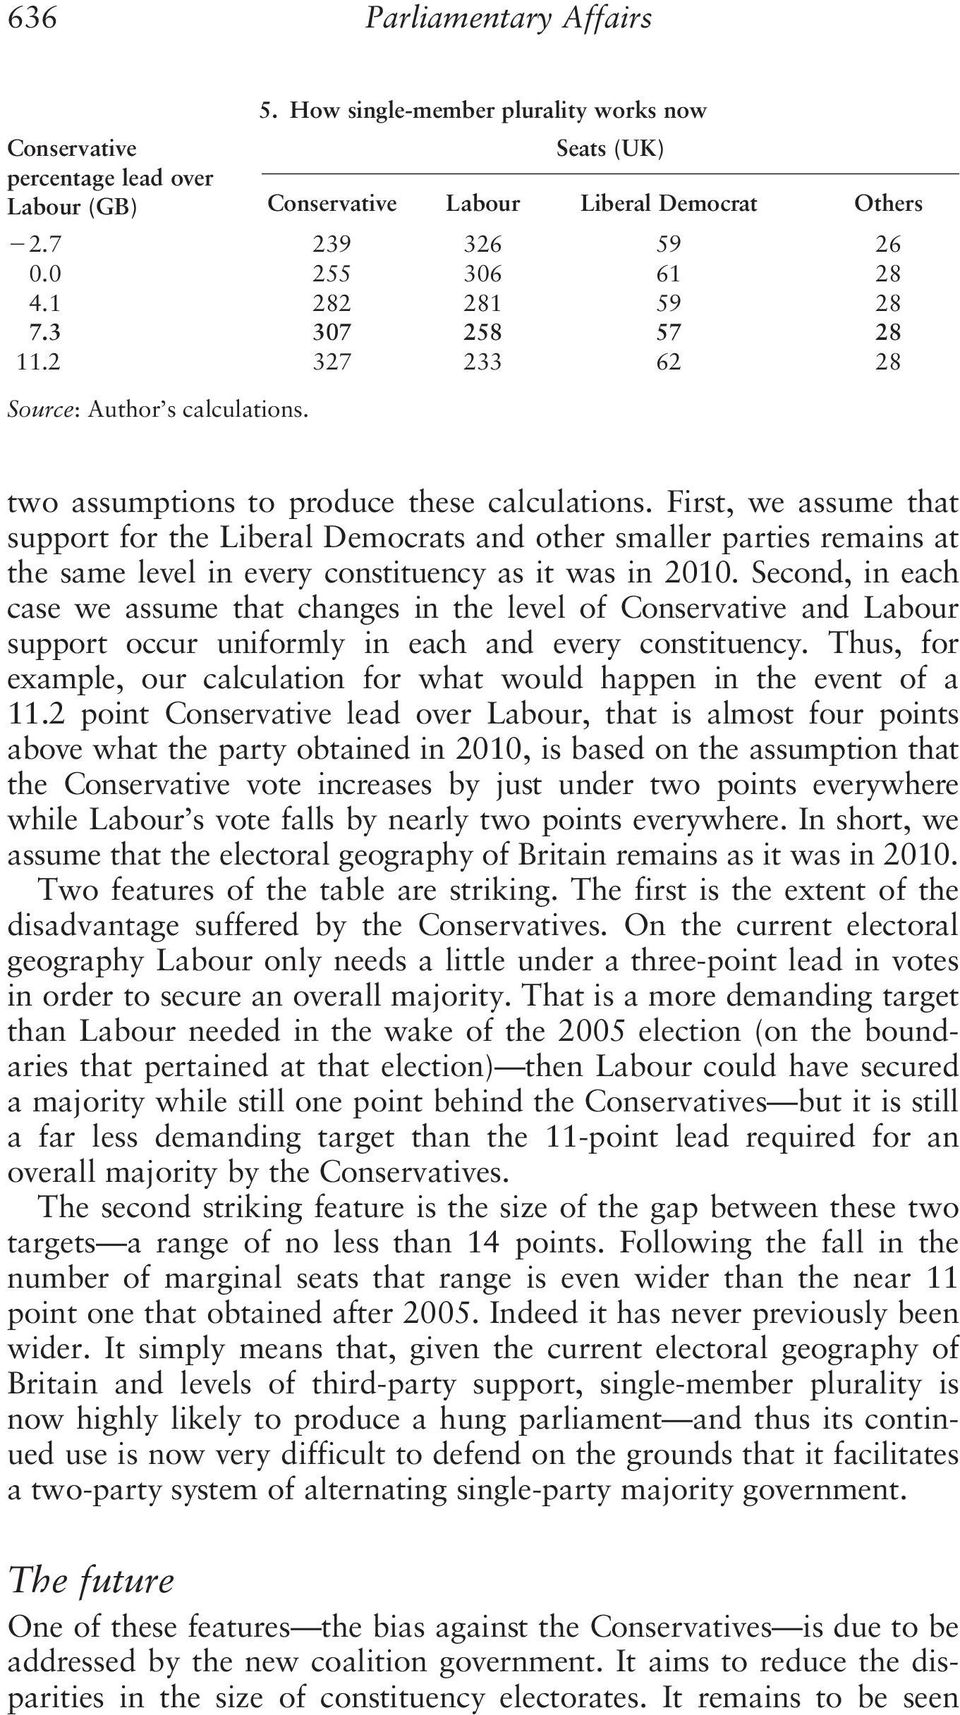 First, we assume that support for the Liberal Democrats and other smaller parties remains at the same level in every constituency as it was in 2010.